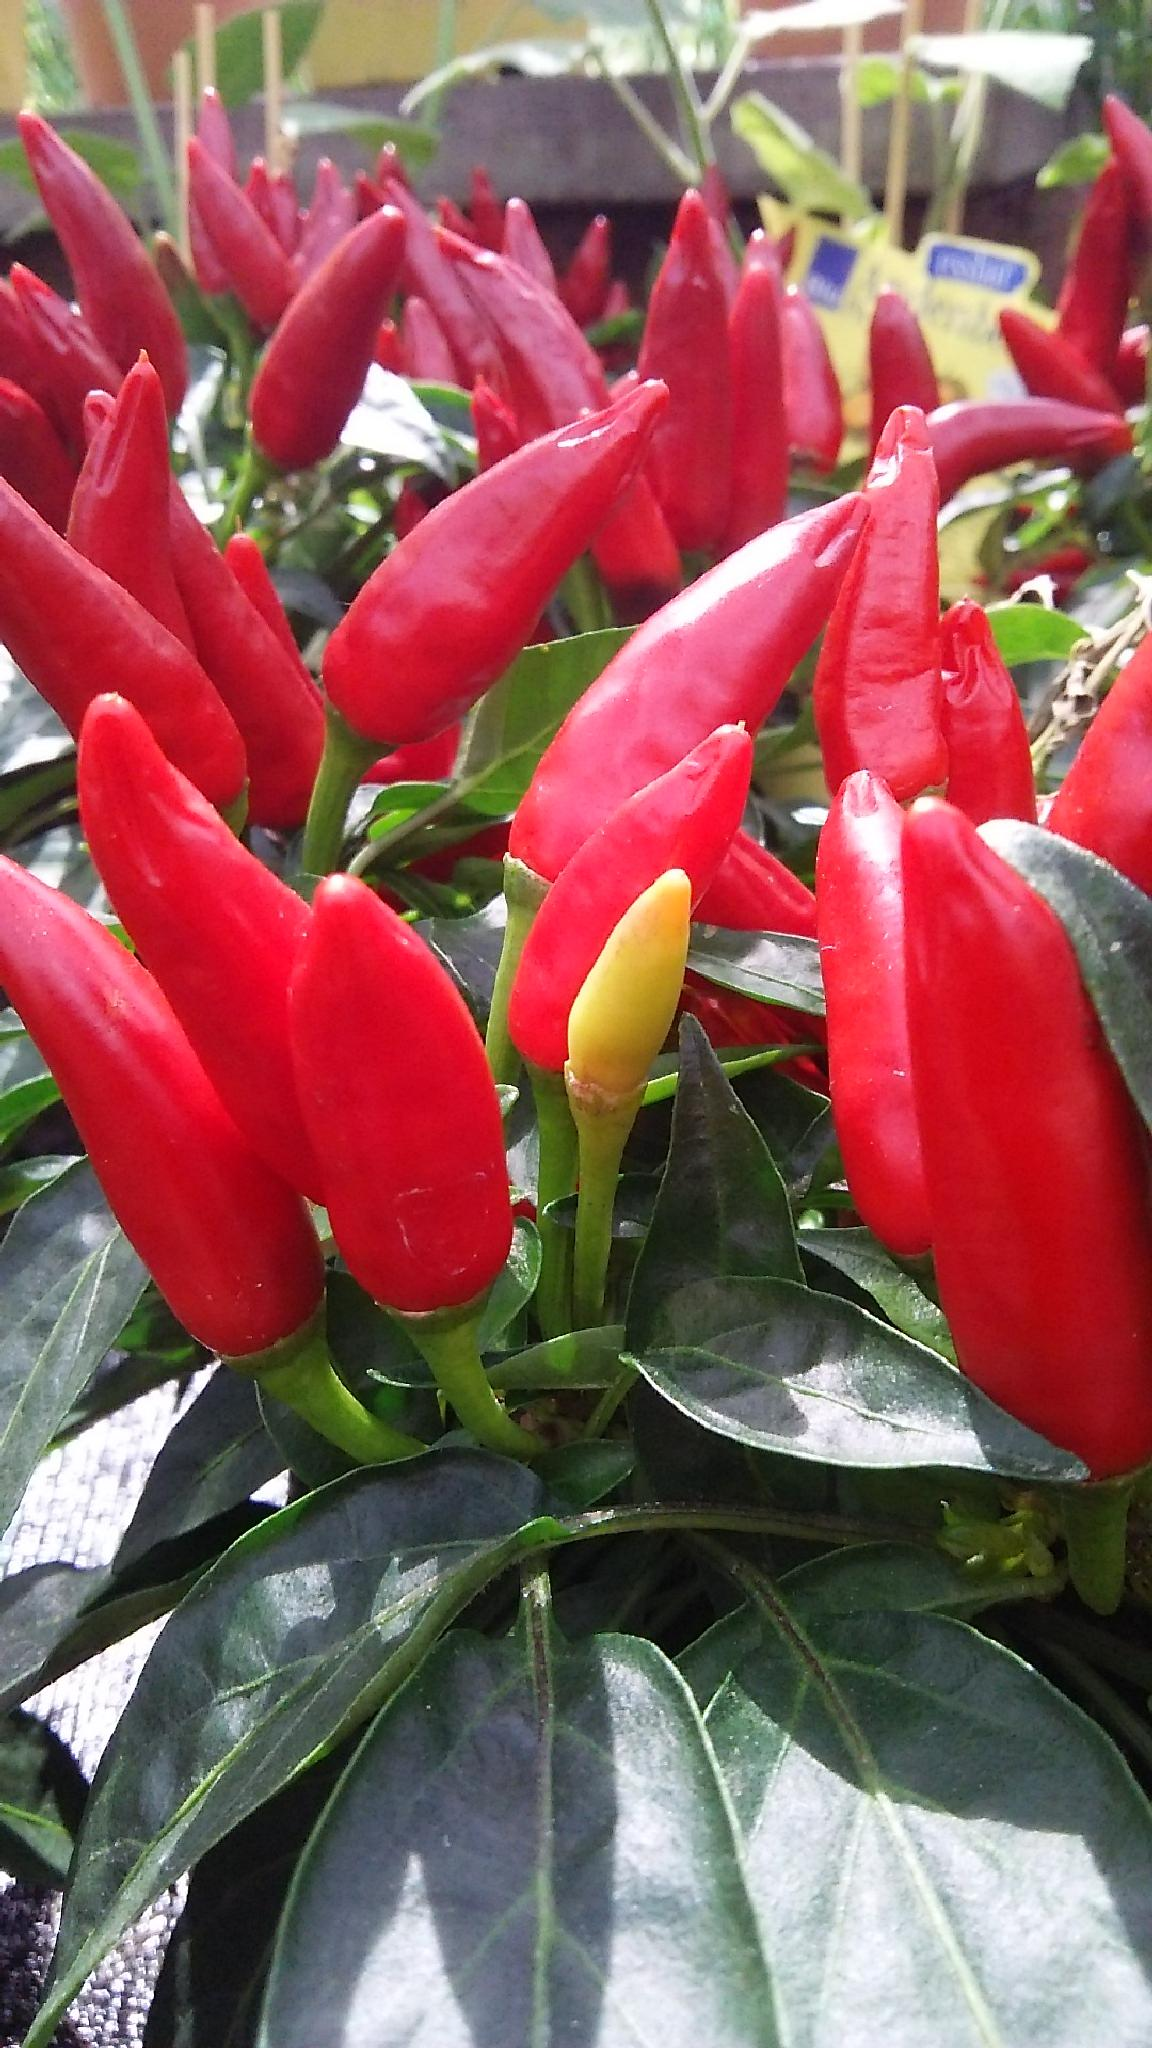 rEd yEllow grEEn , PEPpeR by  Biniam